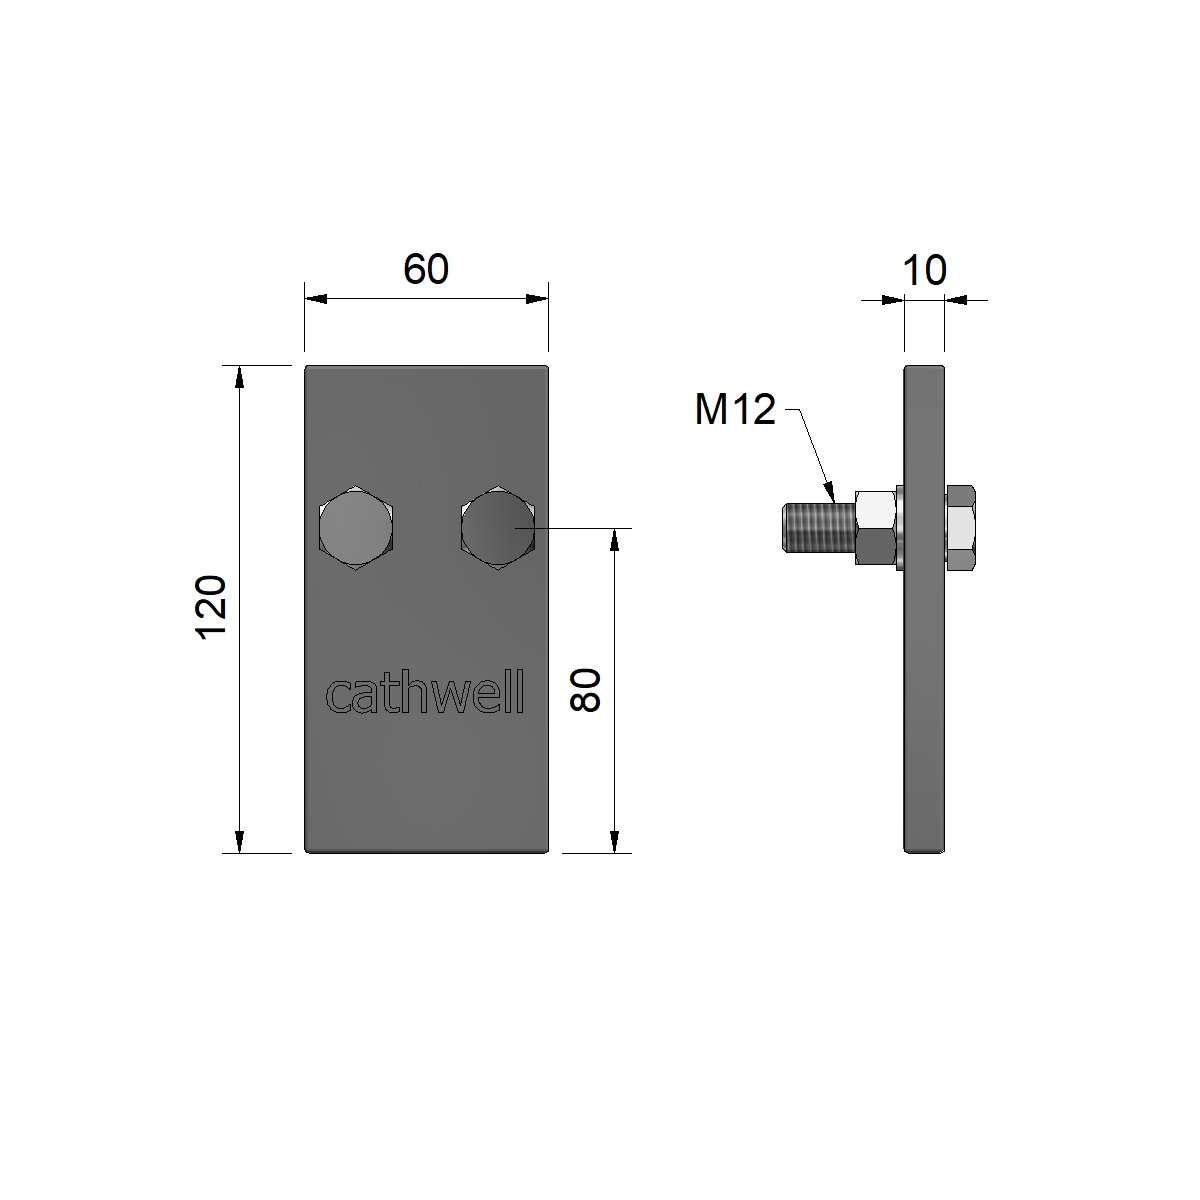 http://Product%20image%20of%20Sacrificial%20anodes%20Brackets%20and%20clamps%20/%20Produktbilde%20av%20Offeranoder%20